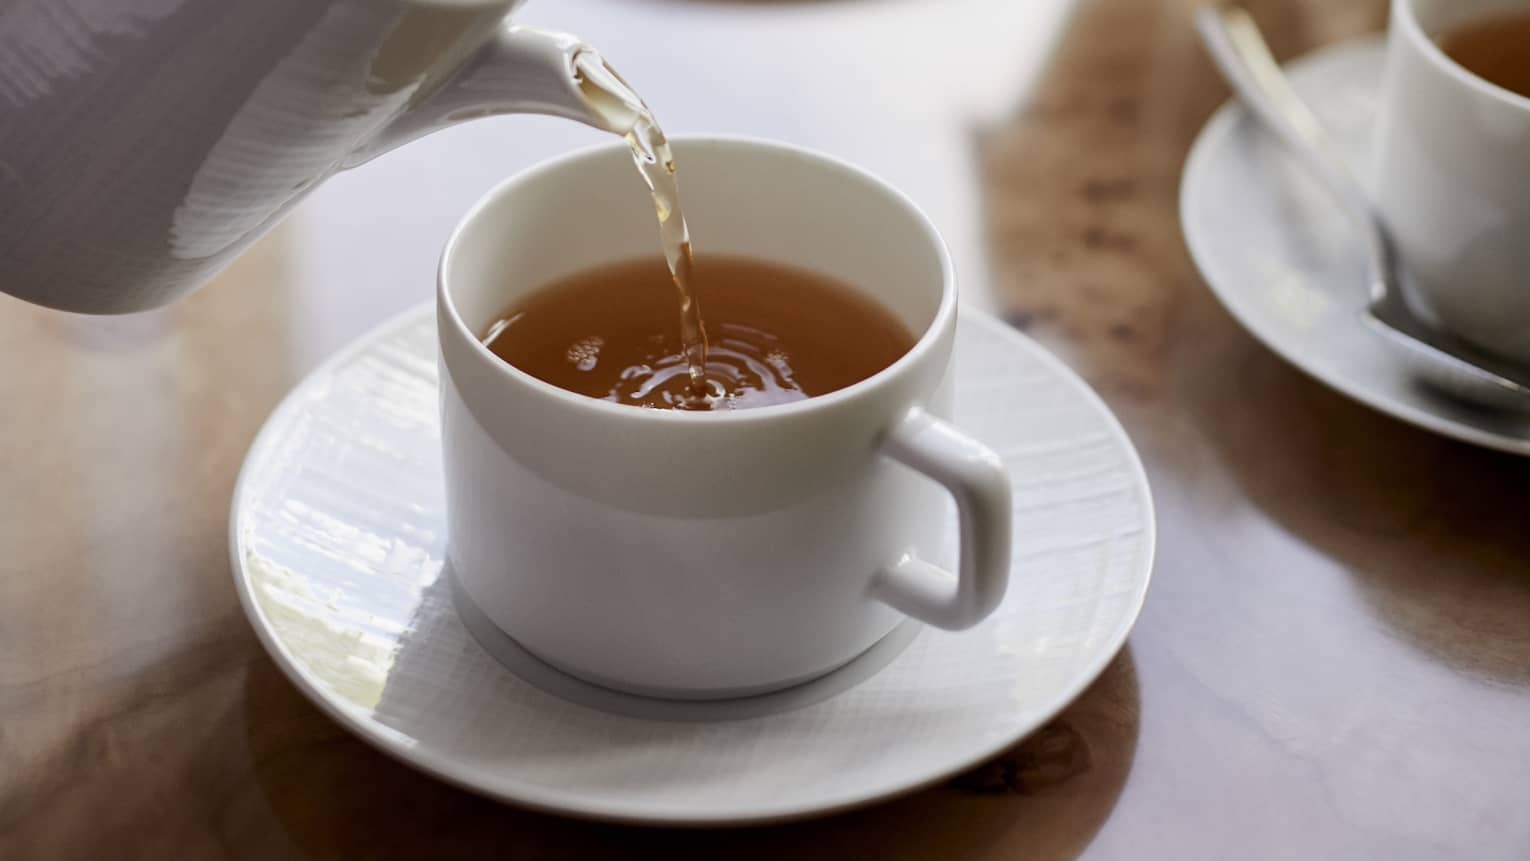 Close-up of tea being poured into white cup